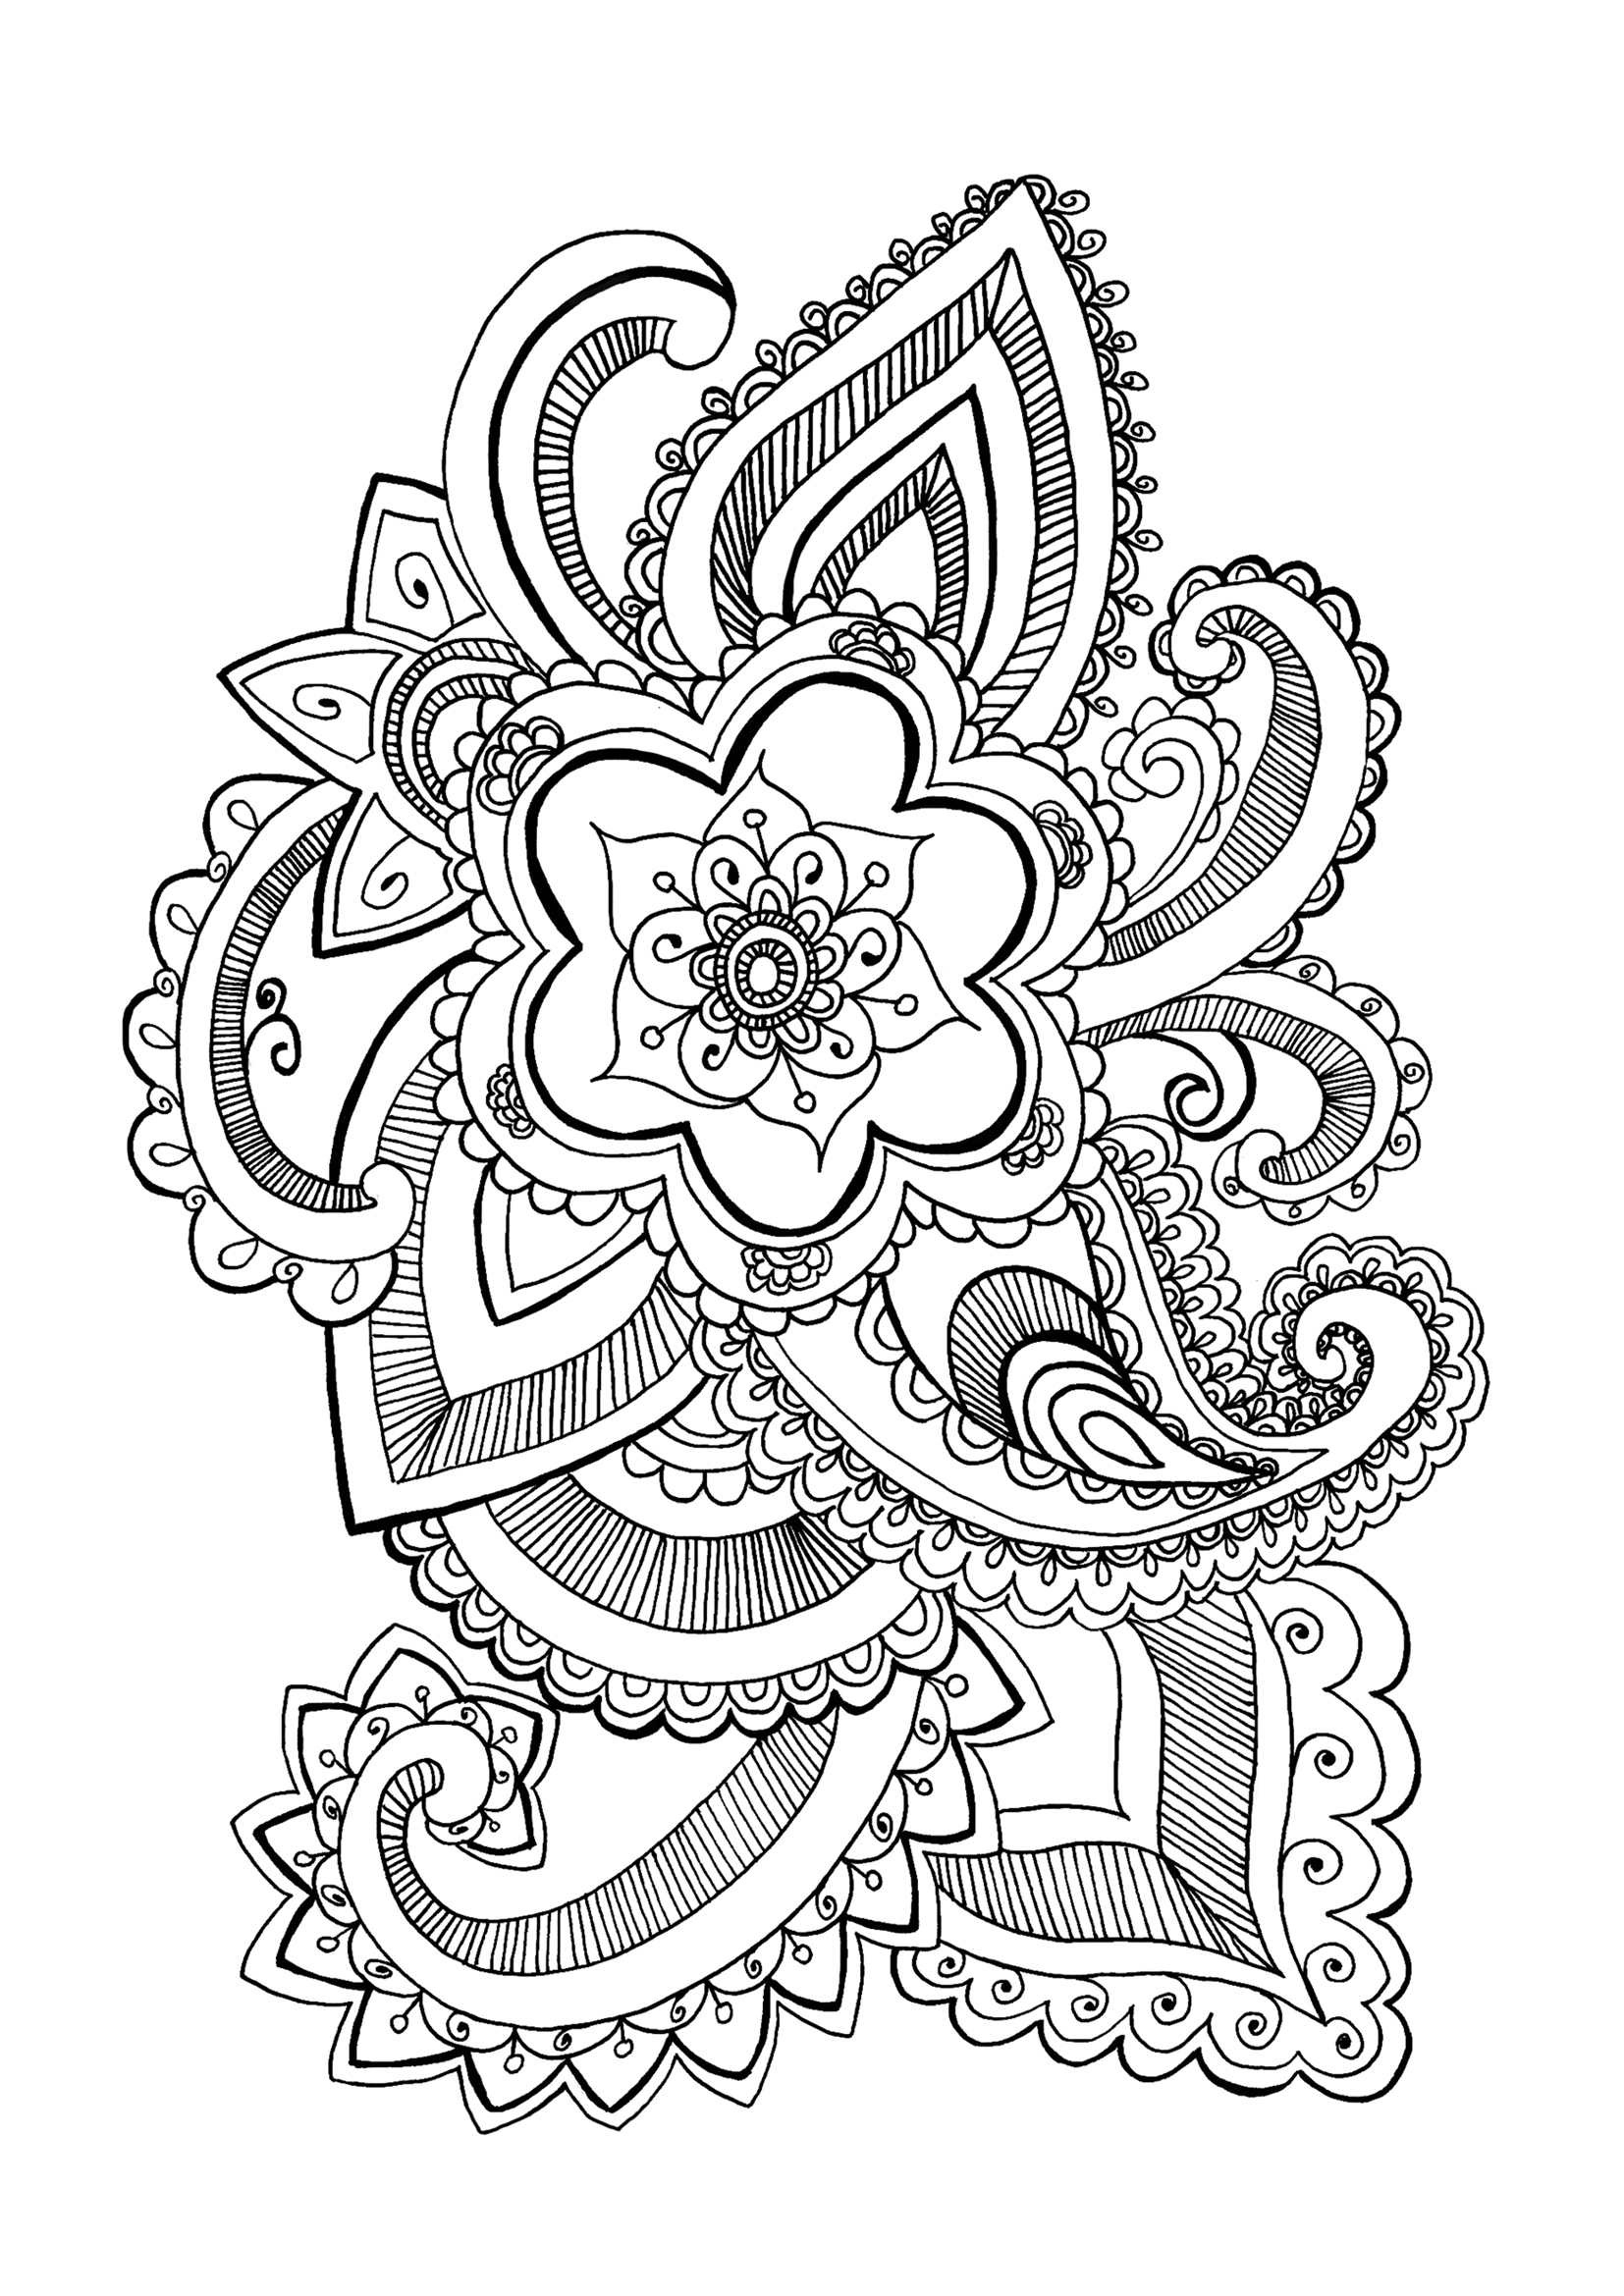 printable coloring pages for adults flowers get this detailed flower coloring pages for adults coloring flowers adults pages printable for